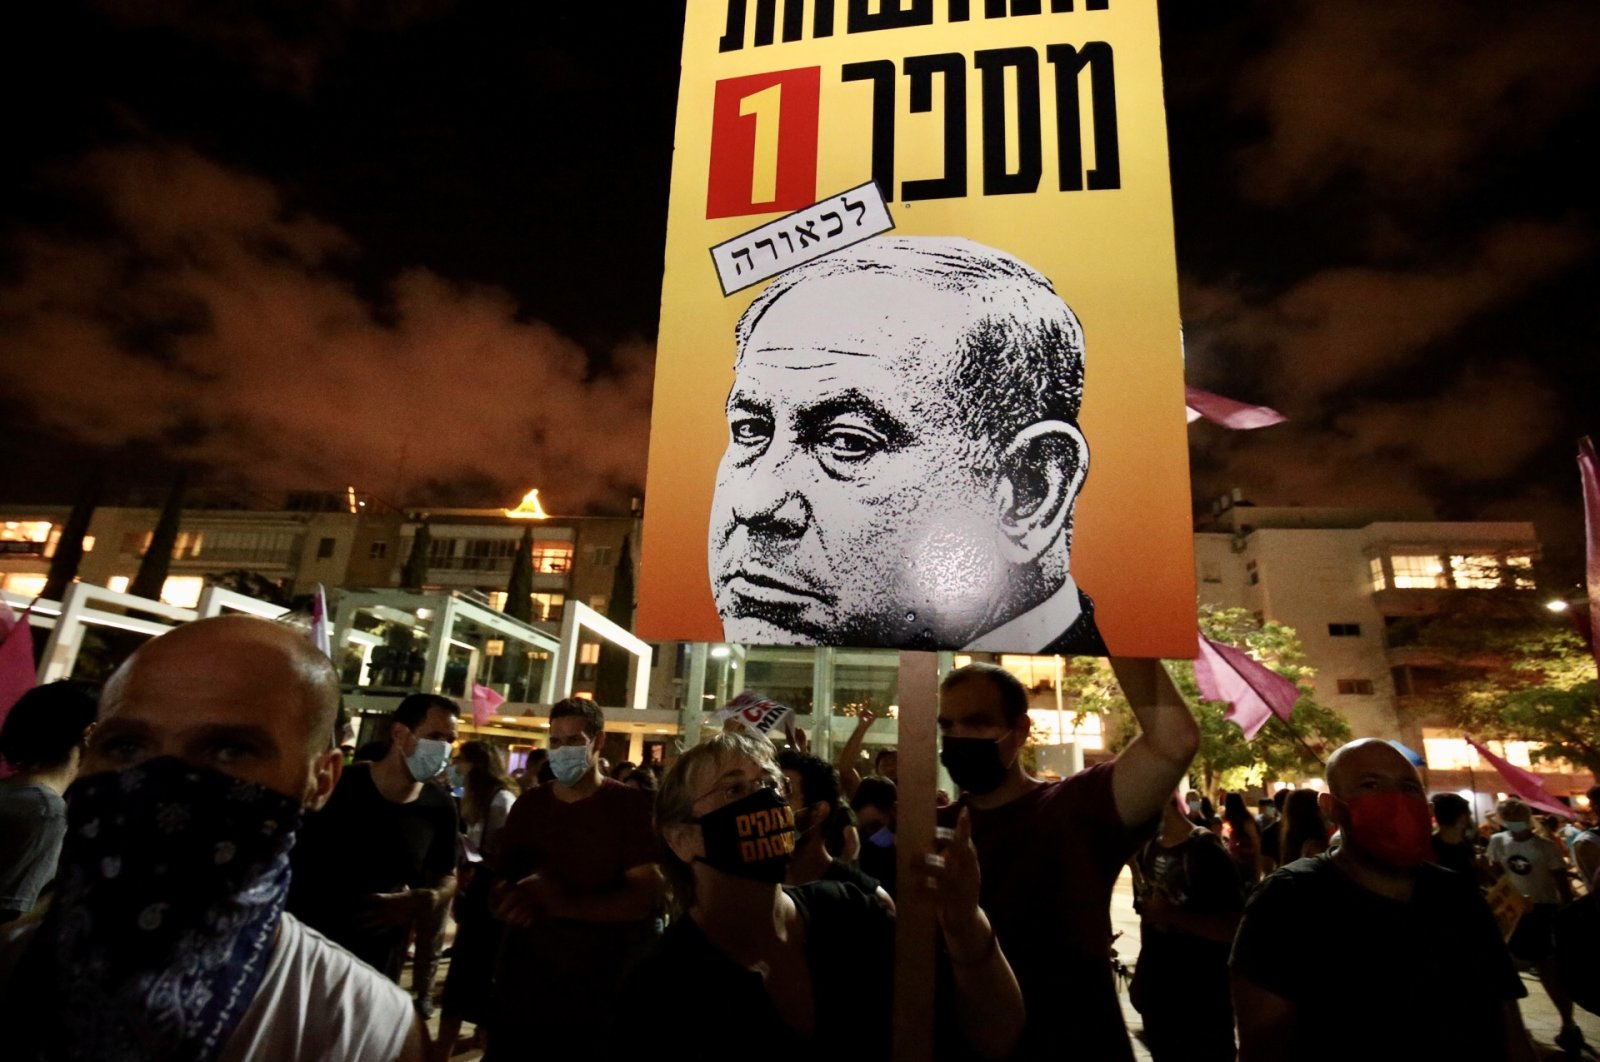 Israeli protesters lift placards during a demonstration against Prime Minister Benjamin Netanyahu, Tel Aviv, Oct. 10, 2020. (AA Photo)